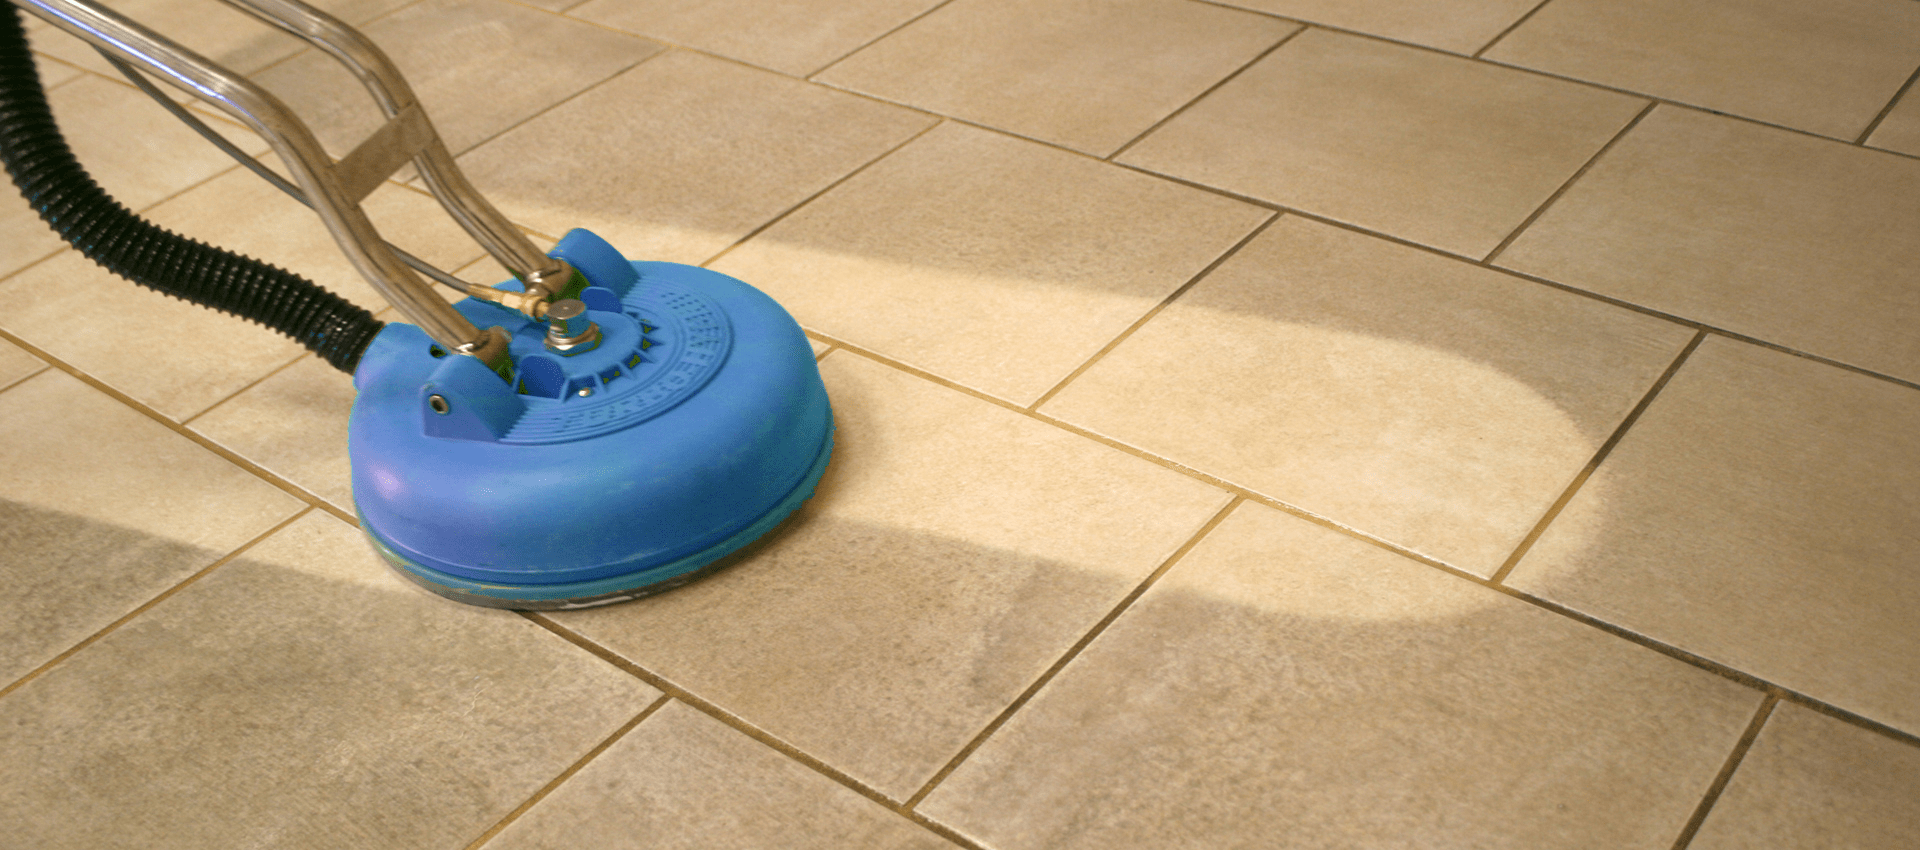 Clean Floor Tile Grout Cleaning